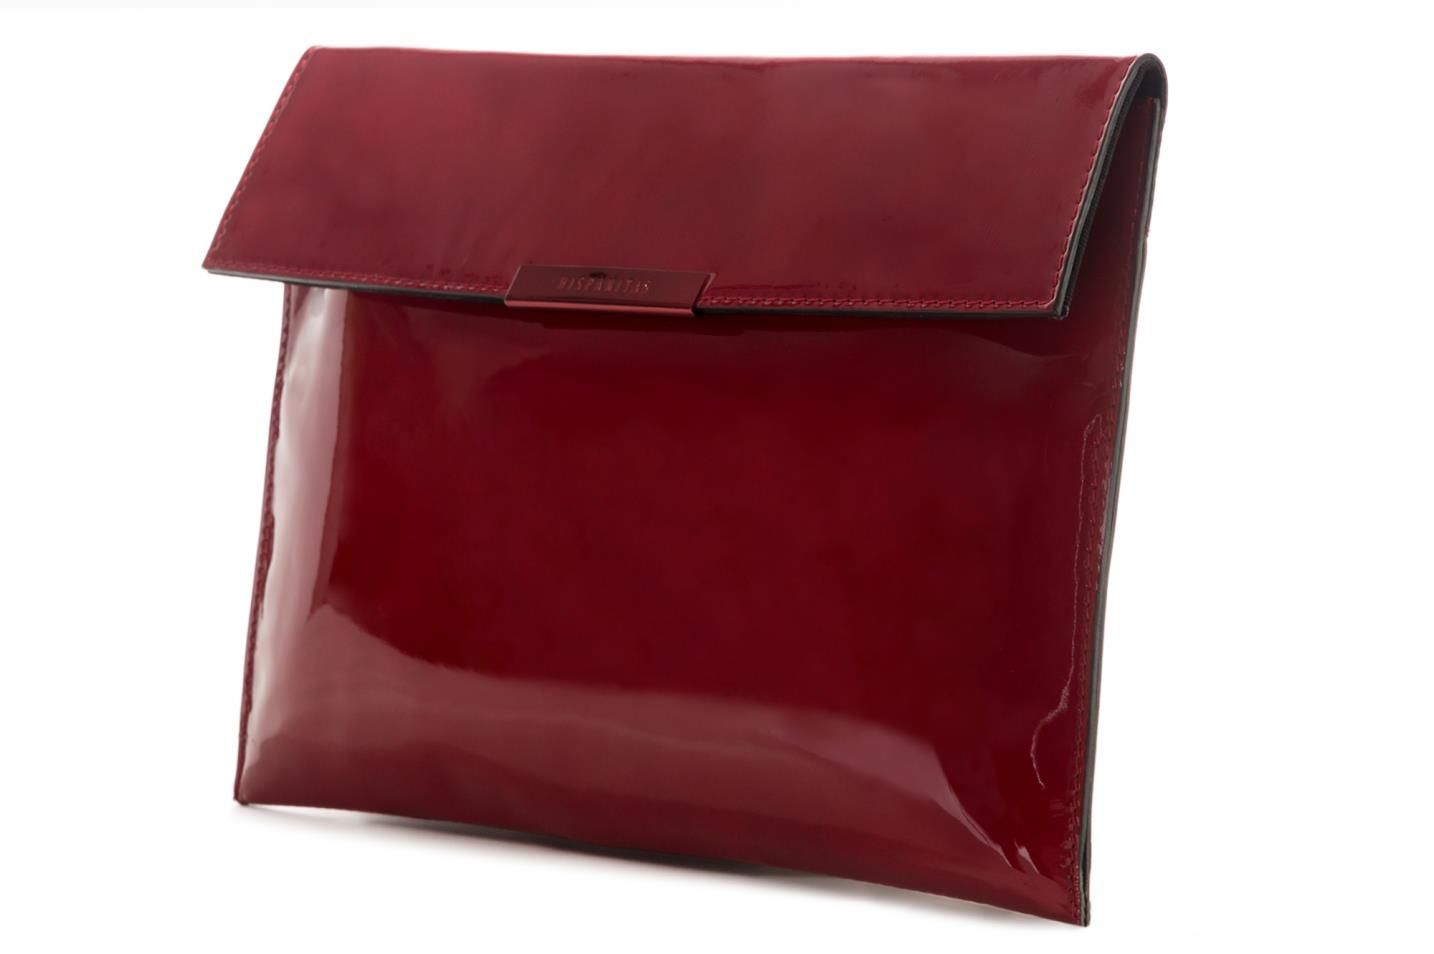 Red leather clutch by Hispanitas with ref. MBI52202